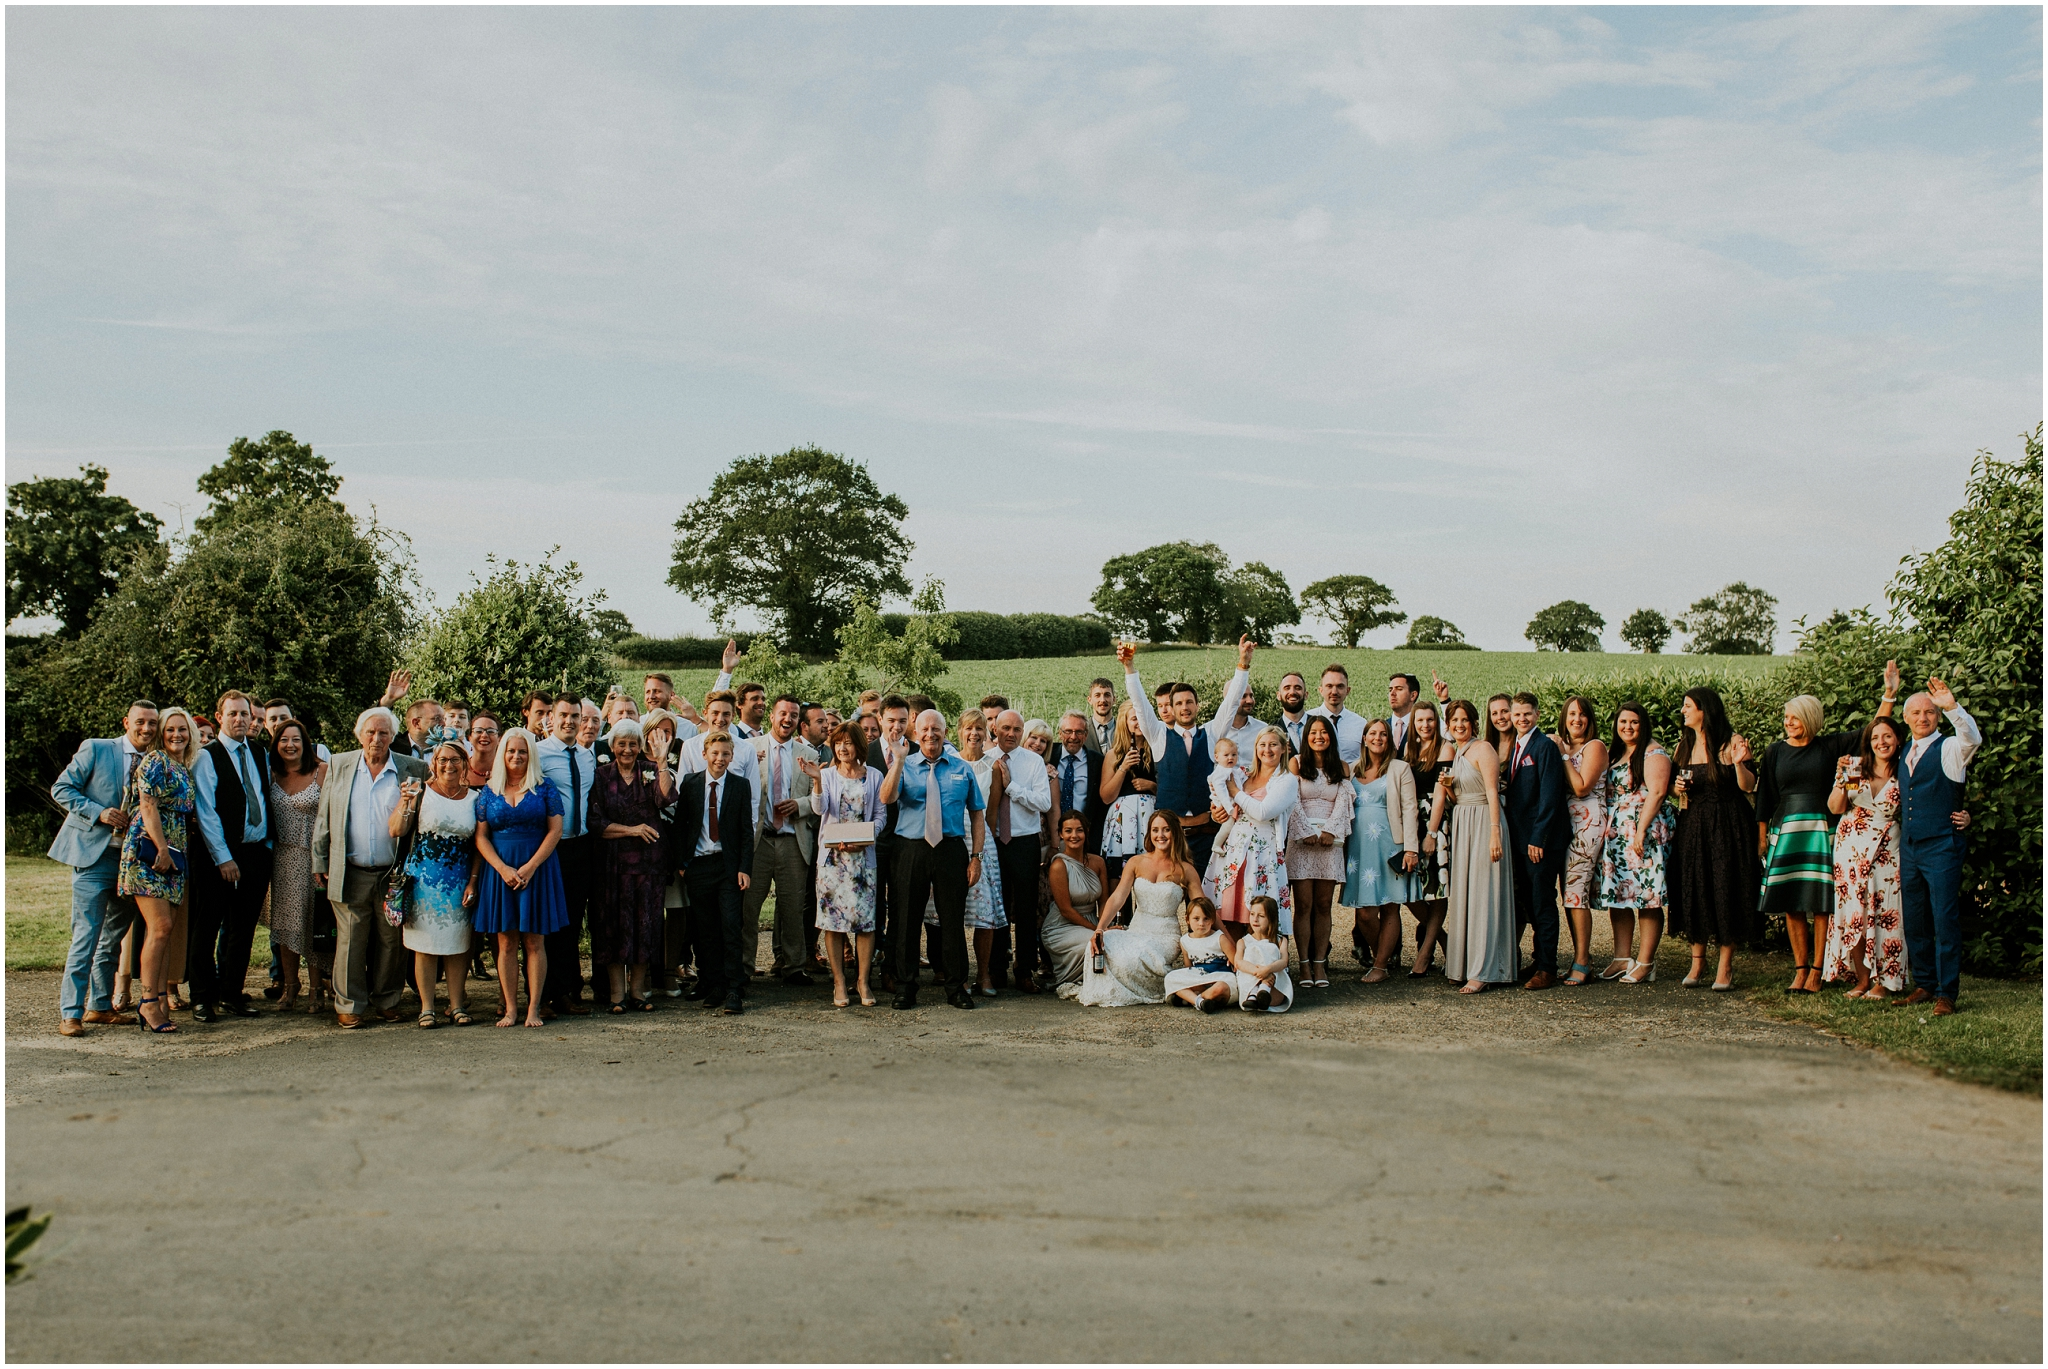 group photo of everyone at the wedding